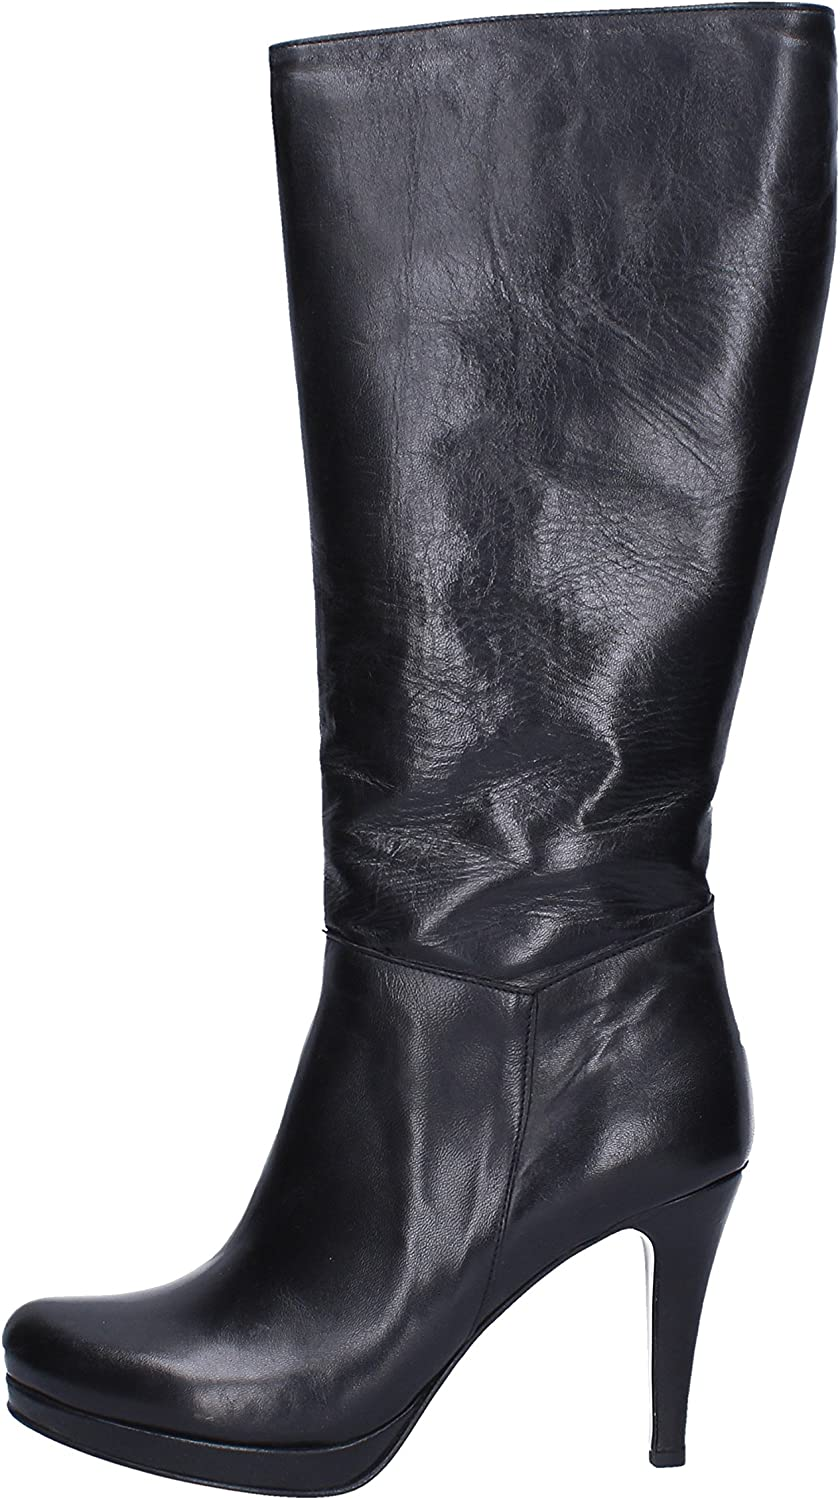 CALPIERRE Boots Womens Leather Black